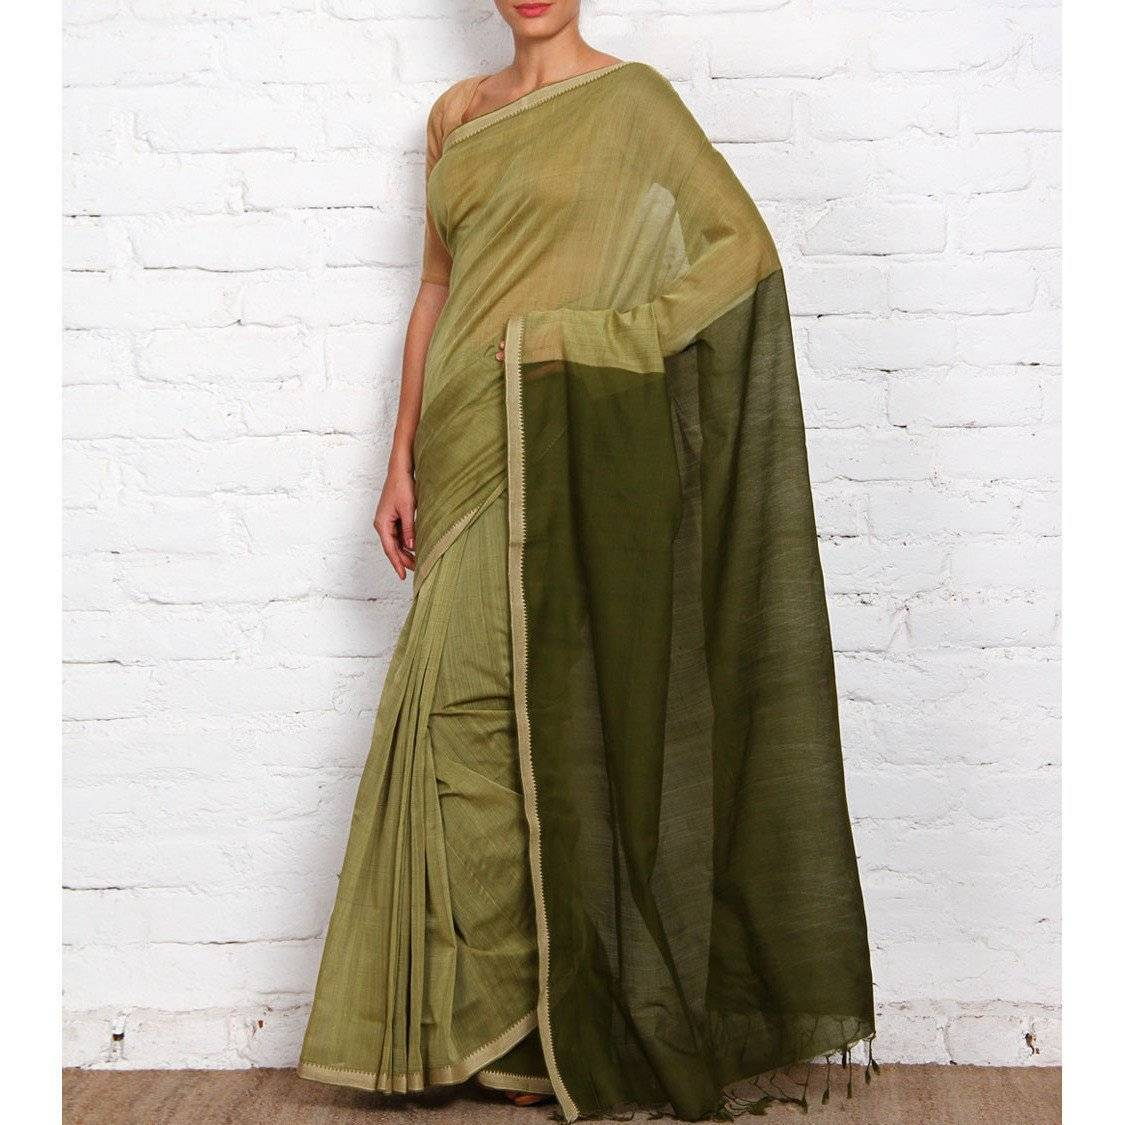 Green Mangalgiri Cotton Saree - rangoutlet.com